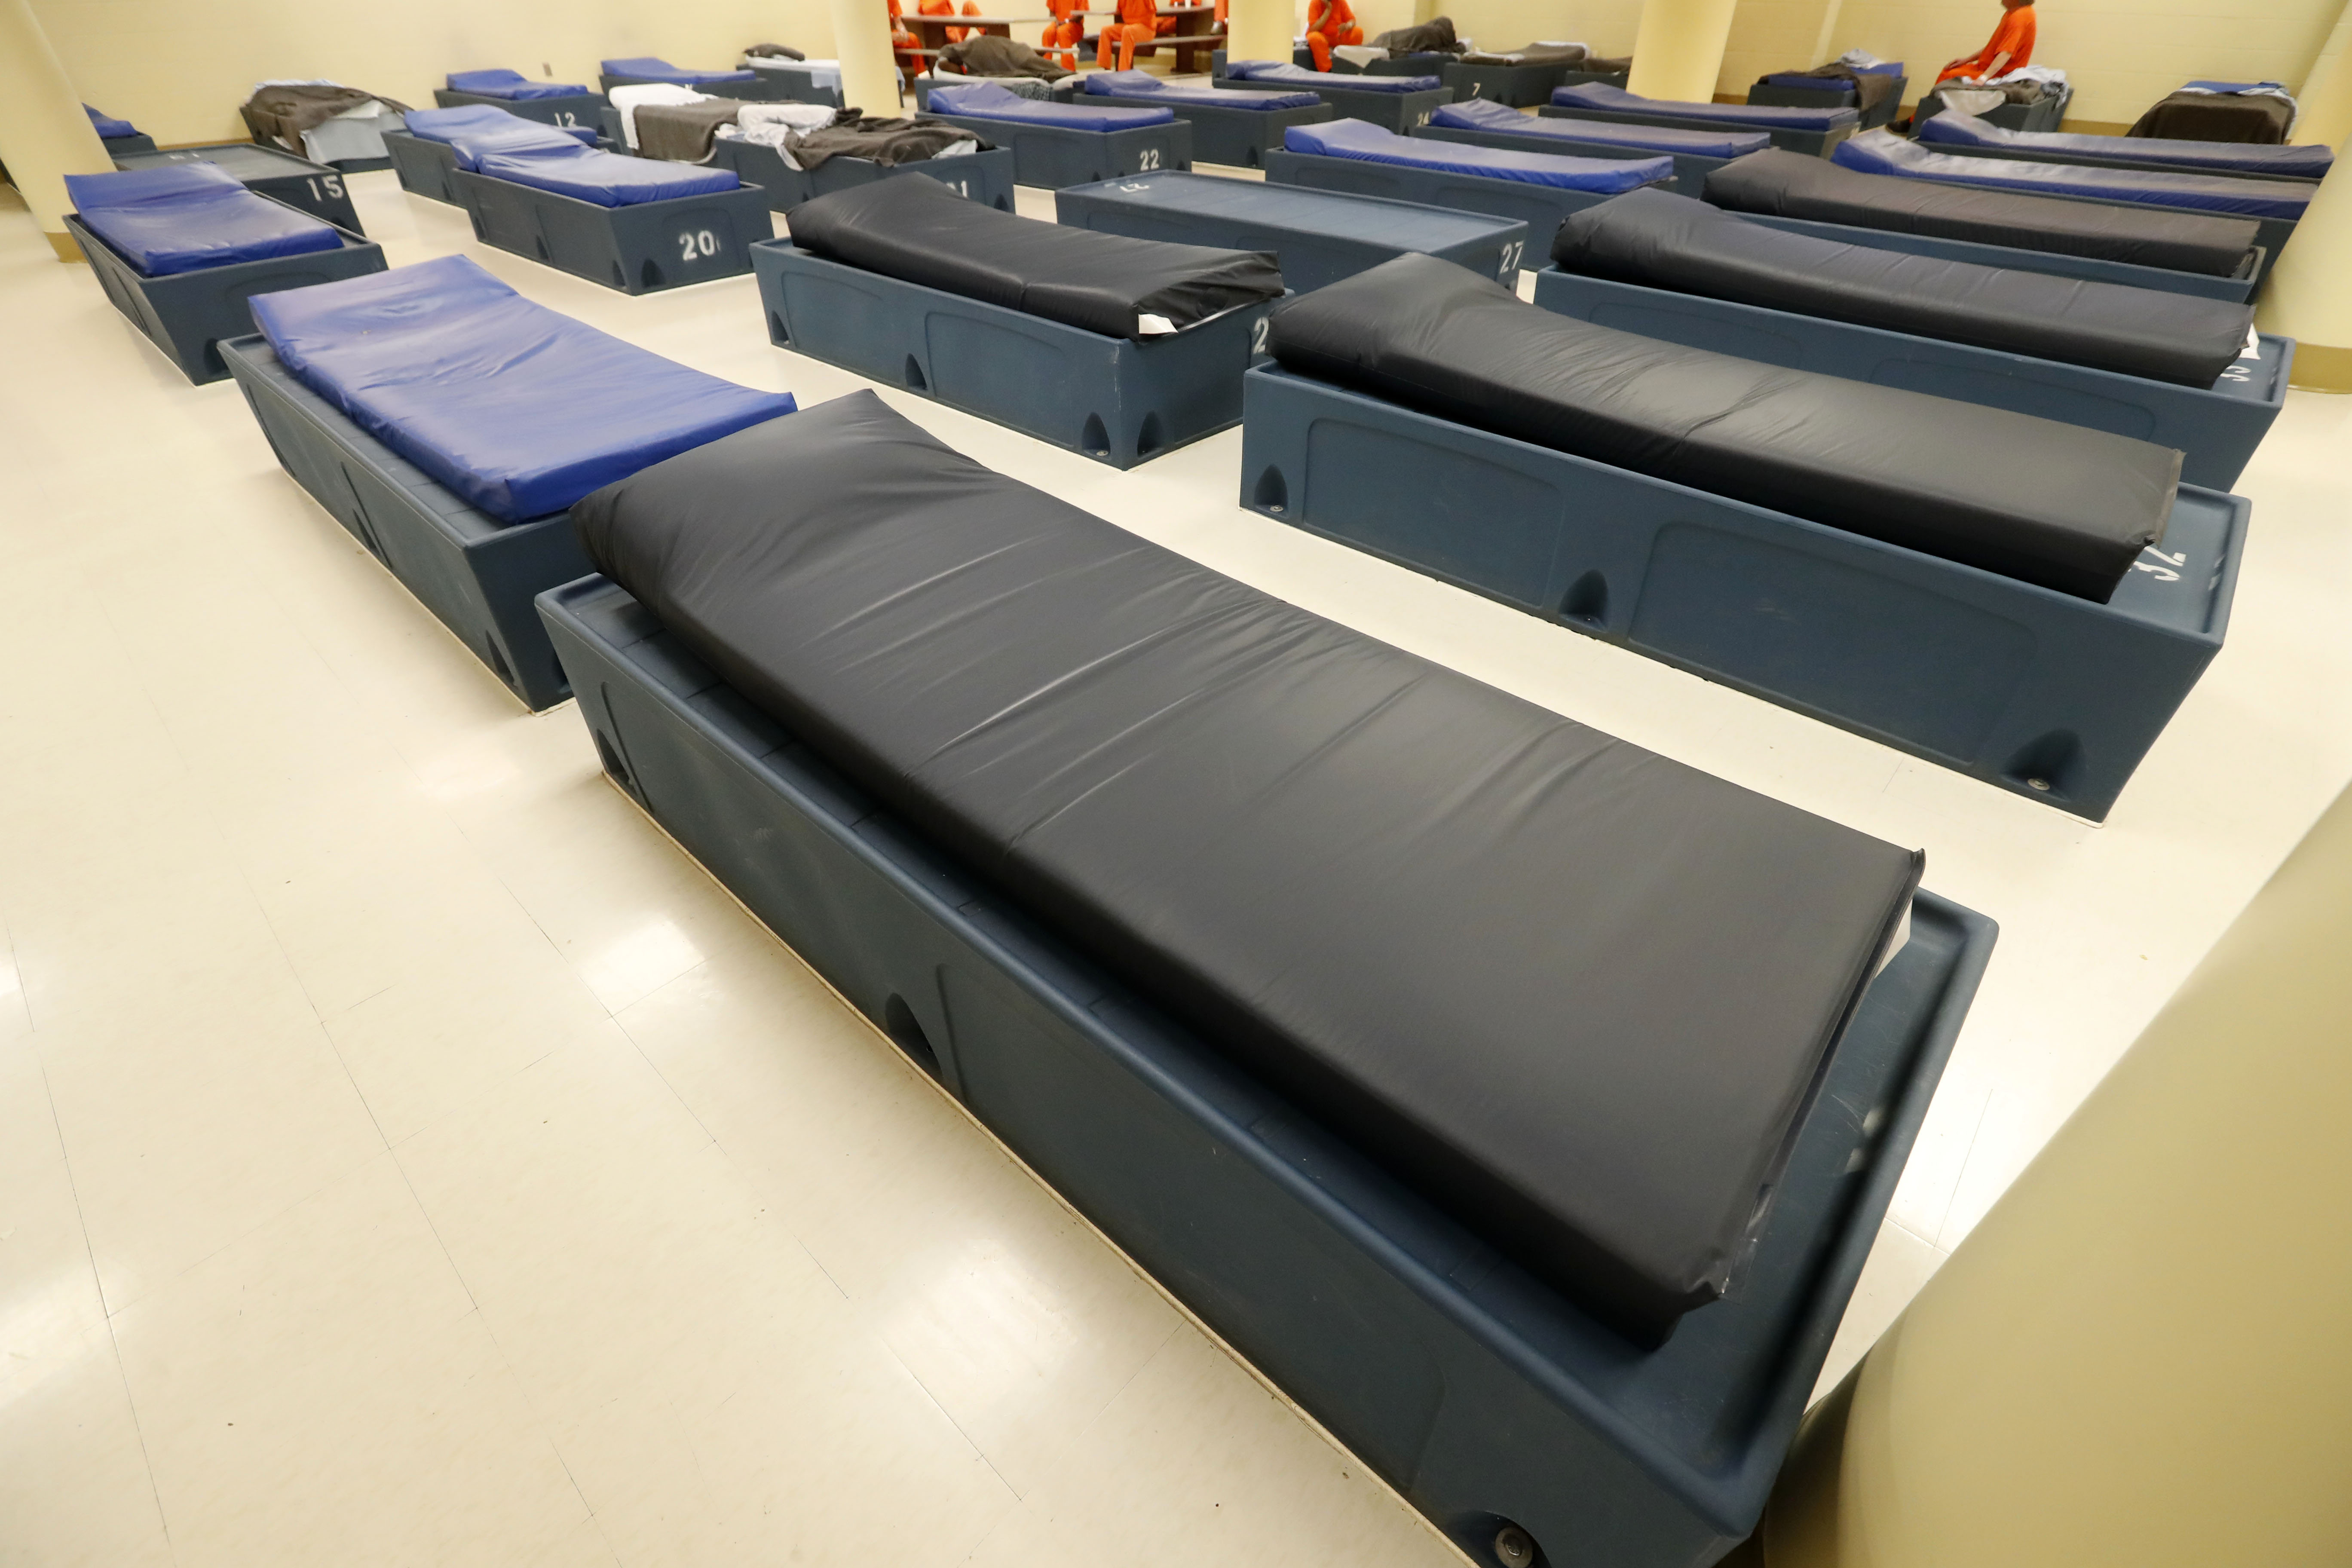 County forces detox on addicted inmates but until now has offered